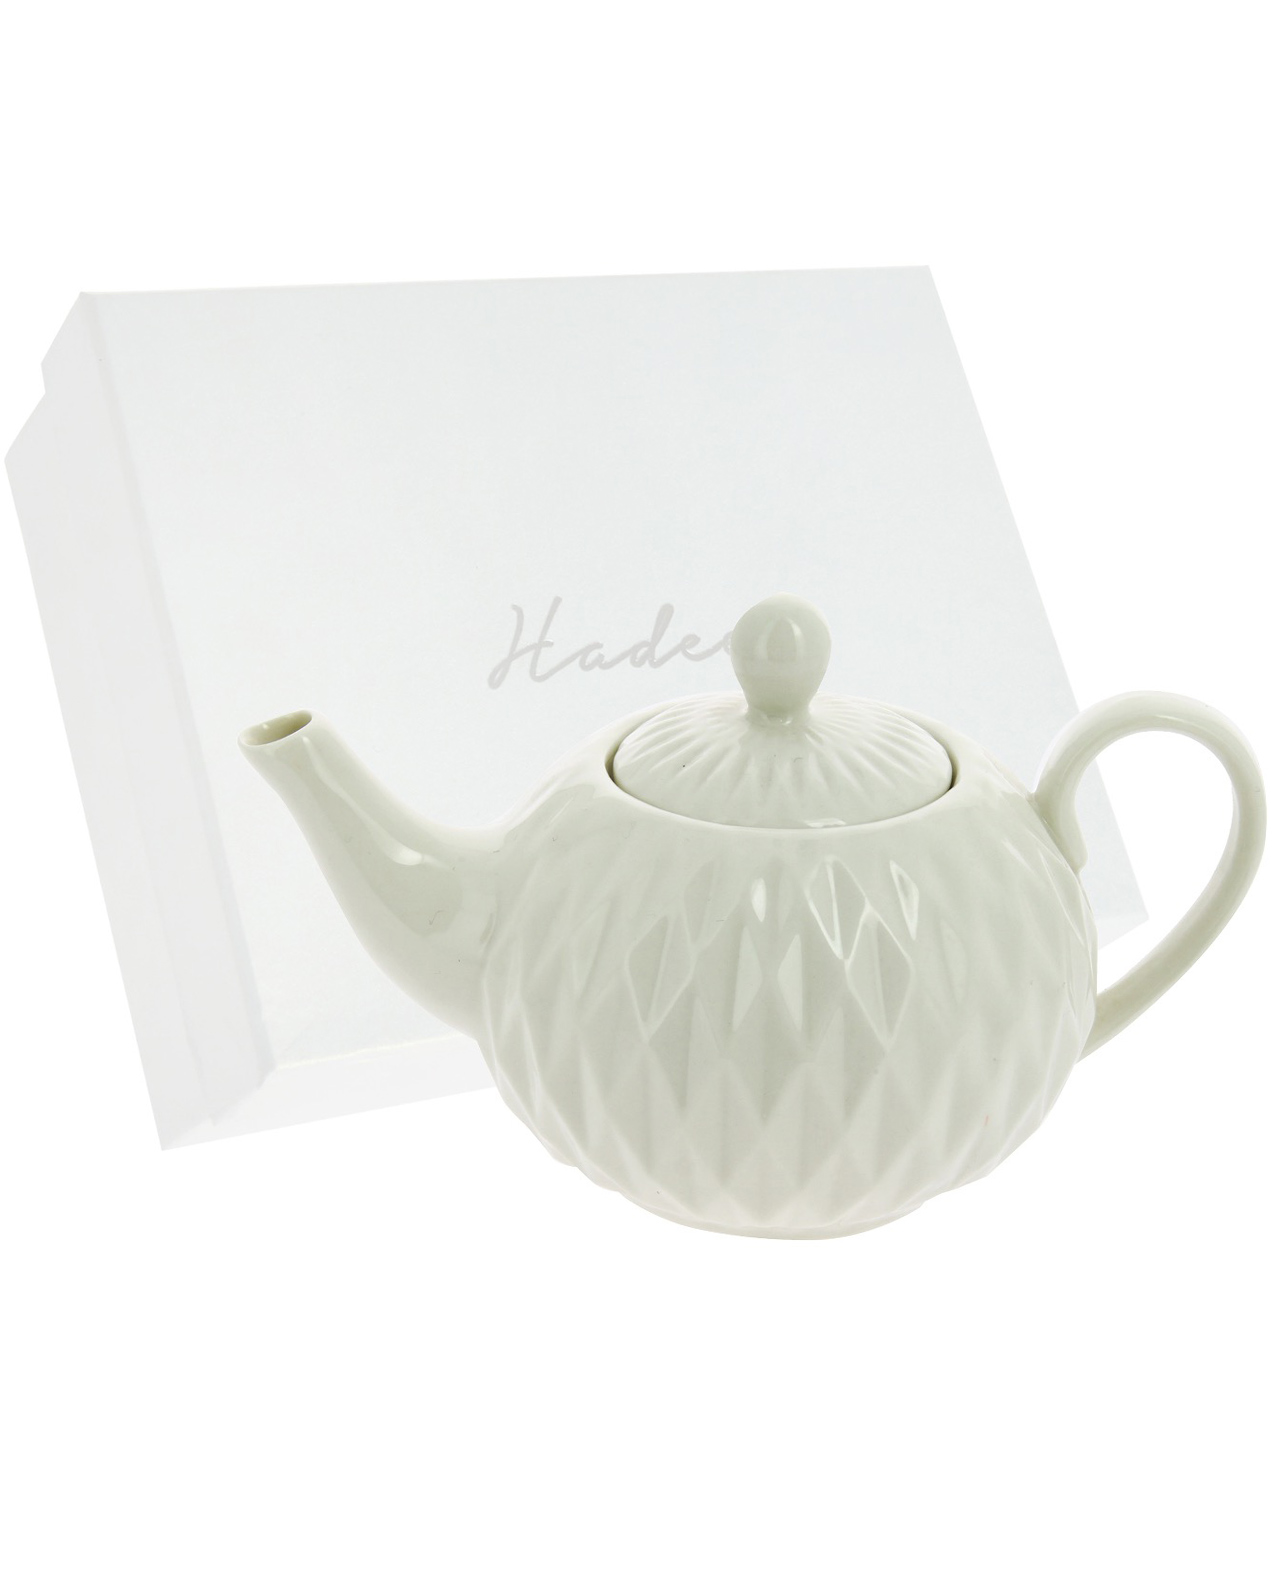 Teiera in porcellana bianca - Mobilia Store Home & Favours